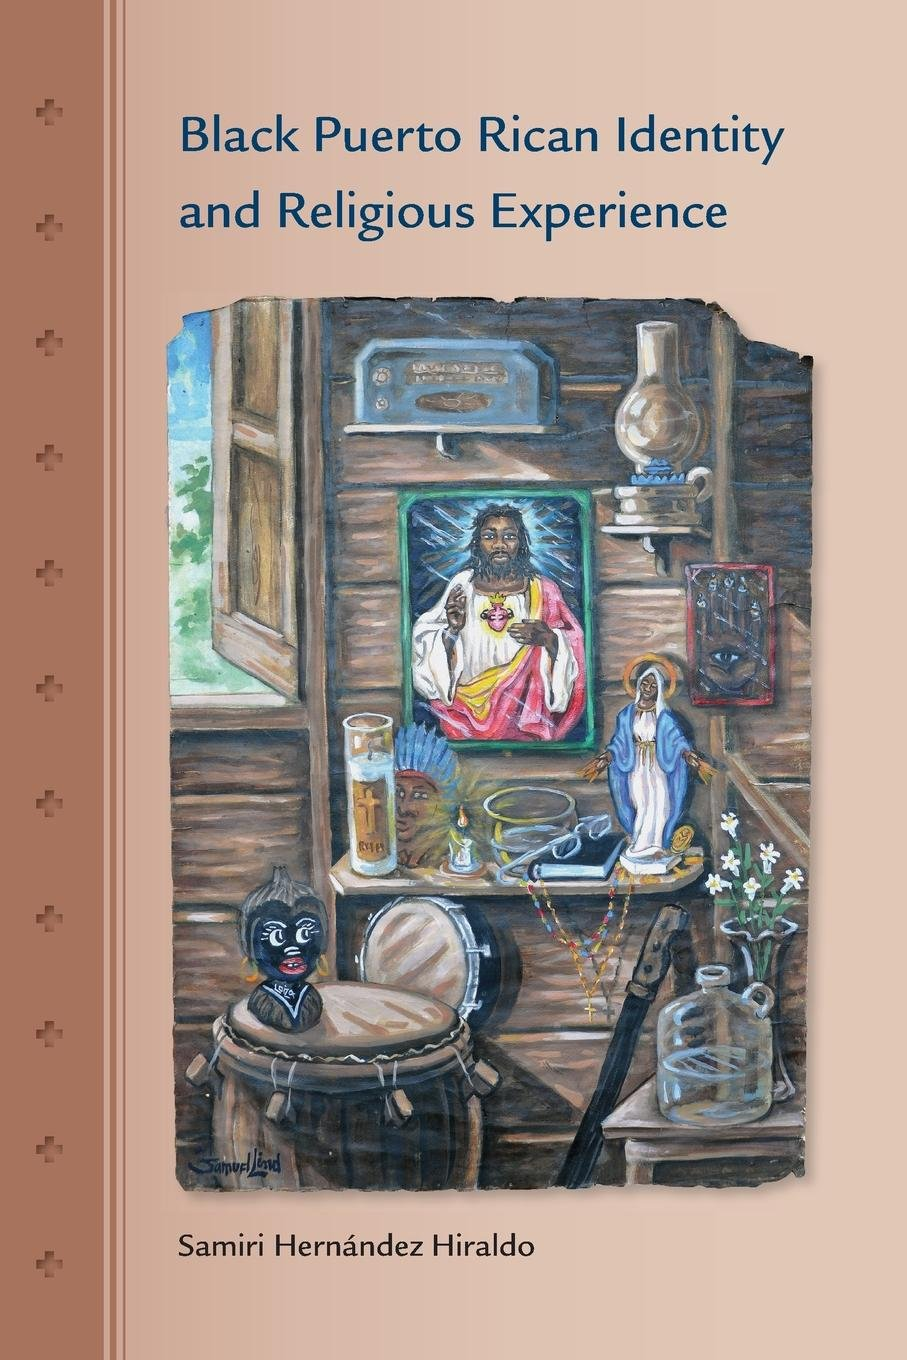 Black Puerto Rican Identity and Religious Experience (New Directions in Puerto Rican Studies) PDF